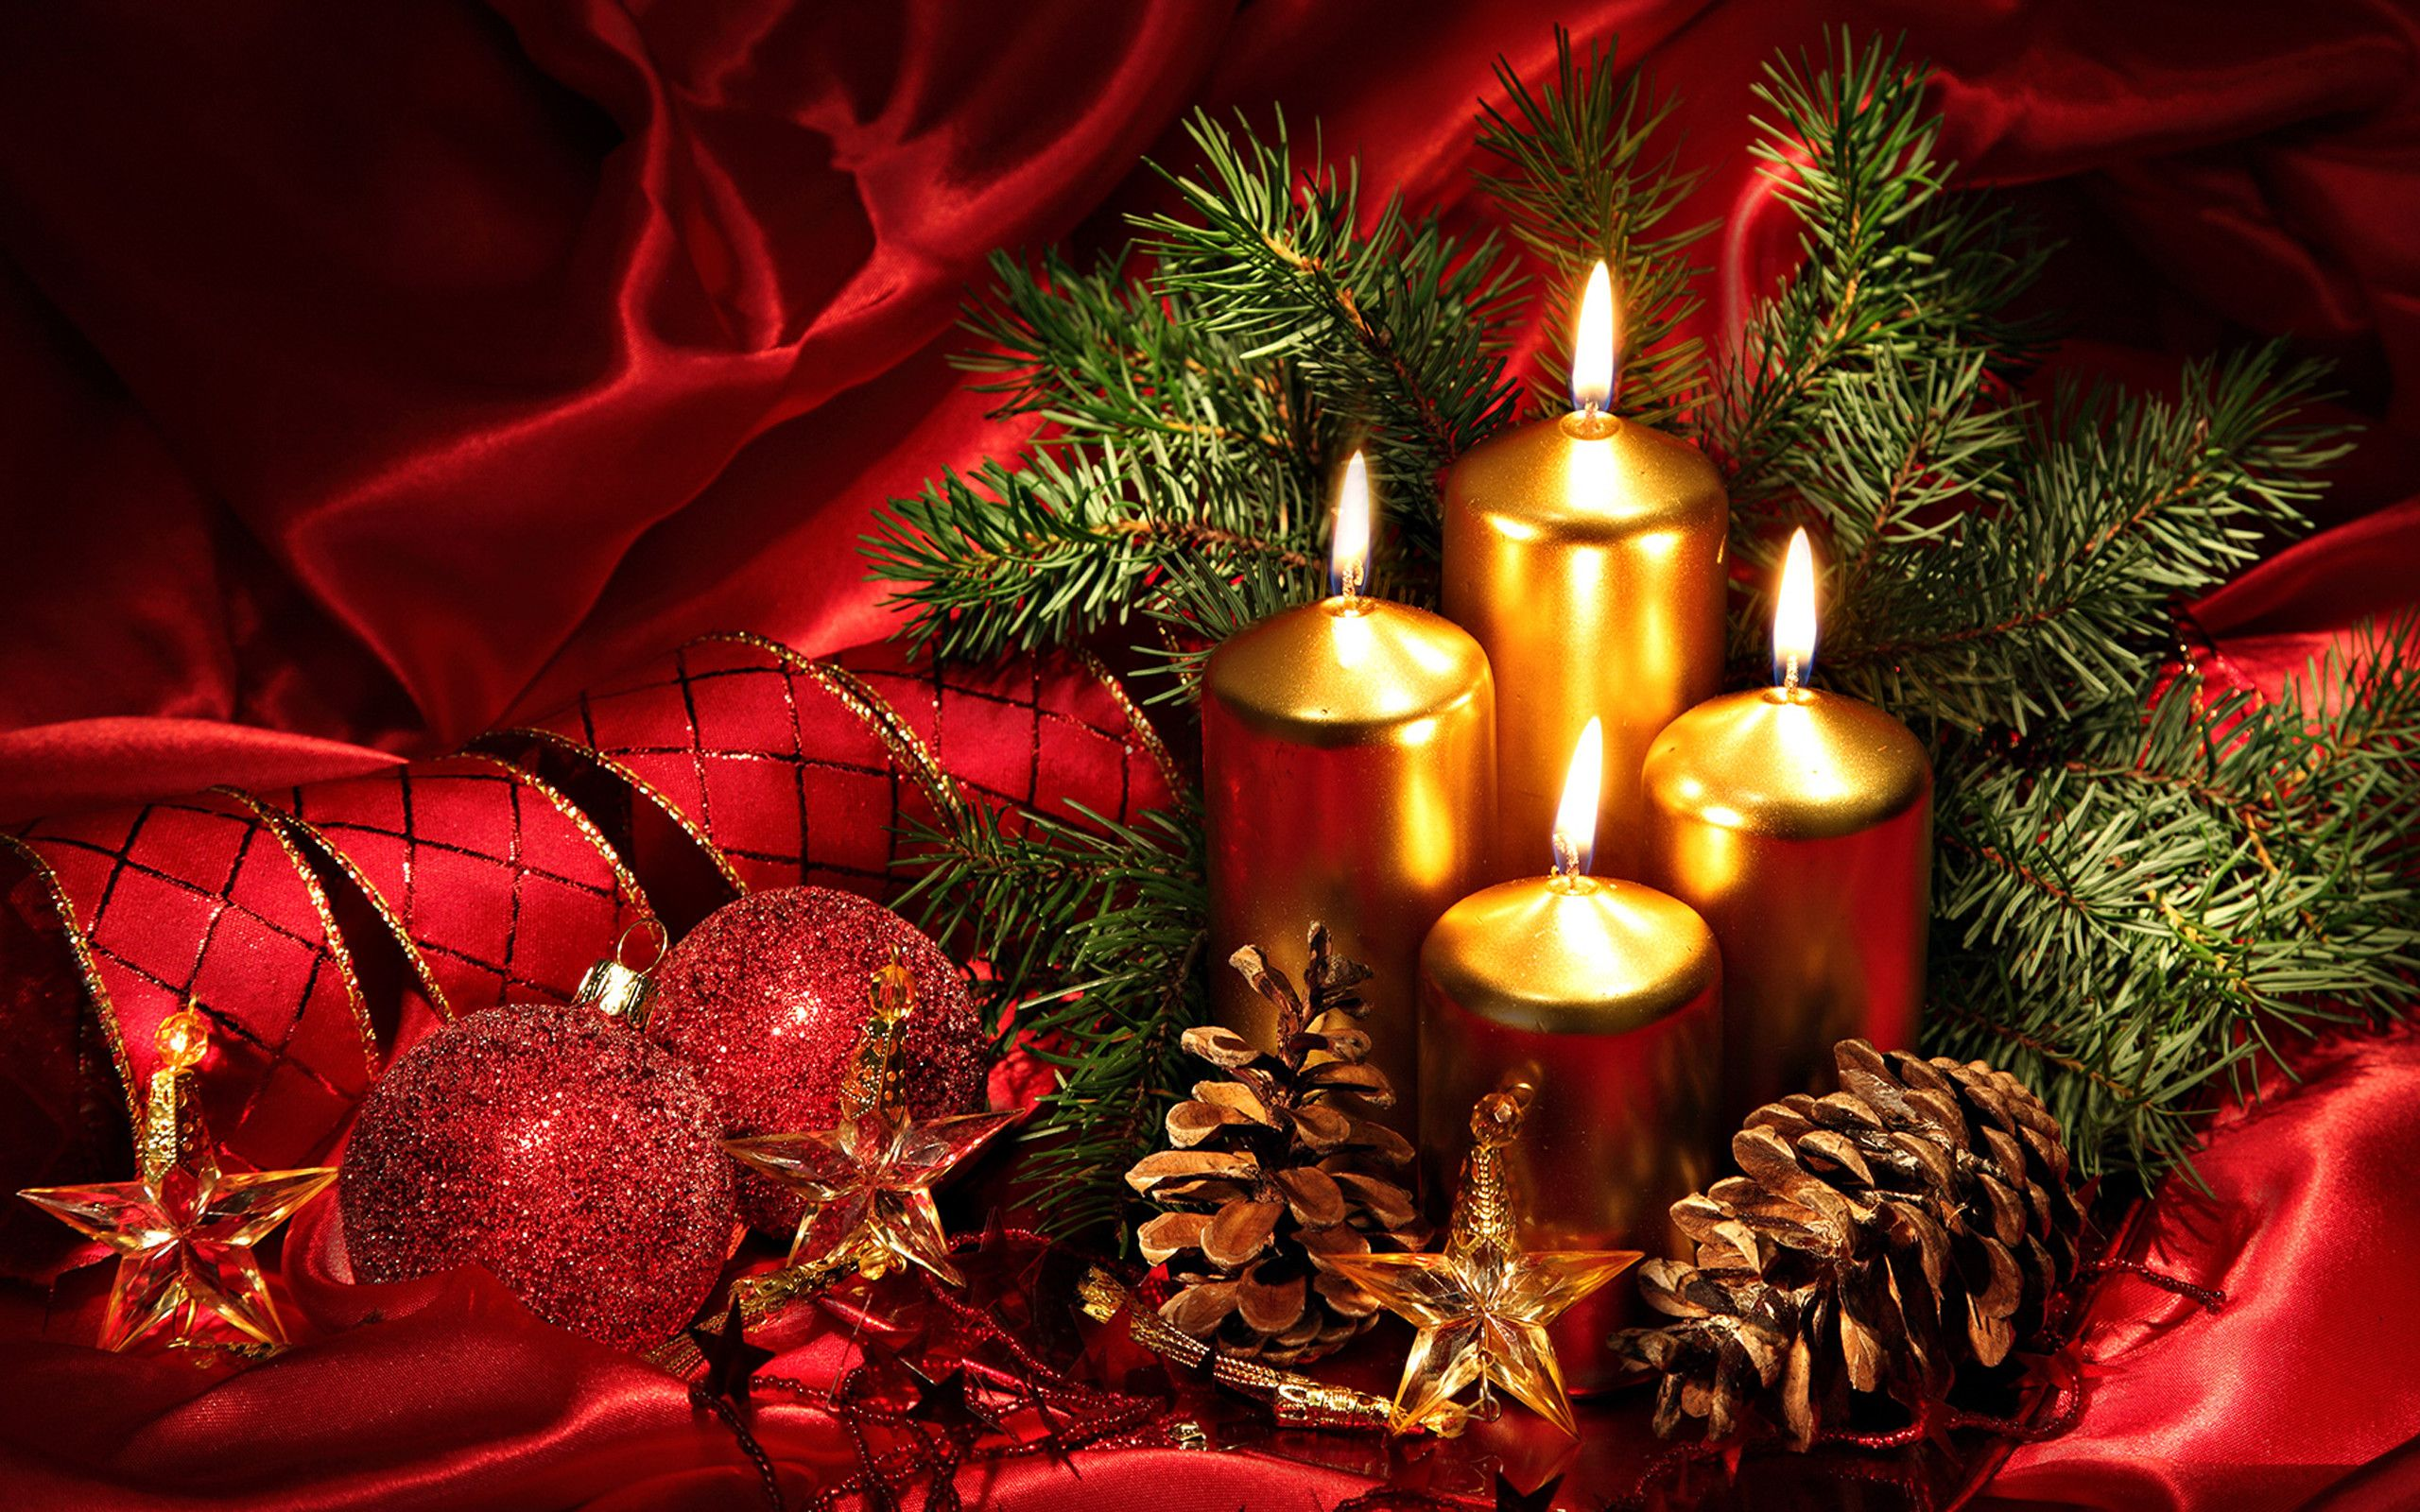 Kerze Weihnachten Gif Res 2560x1600 Christmas Pc Backgrounds Products Weihnachtsdeko